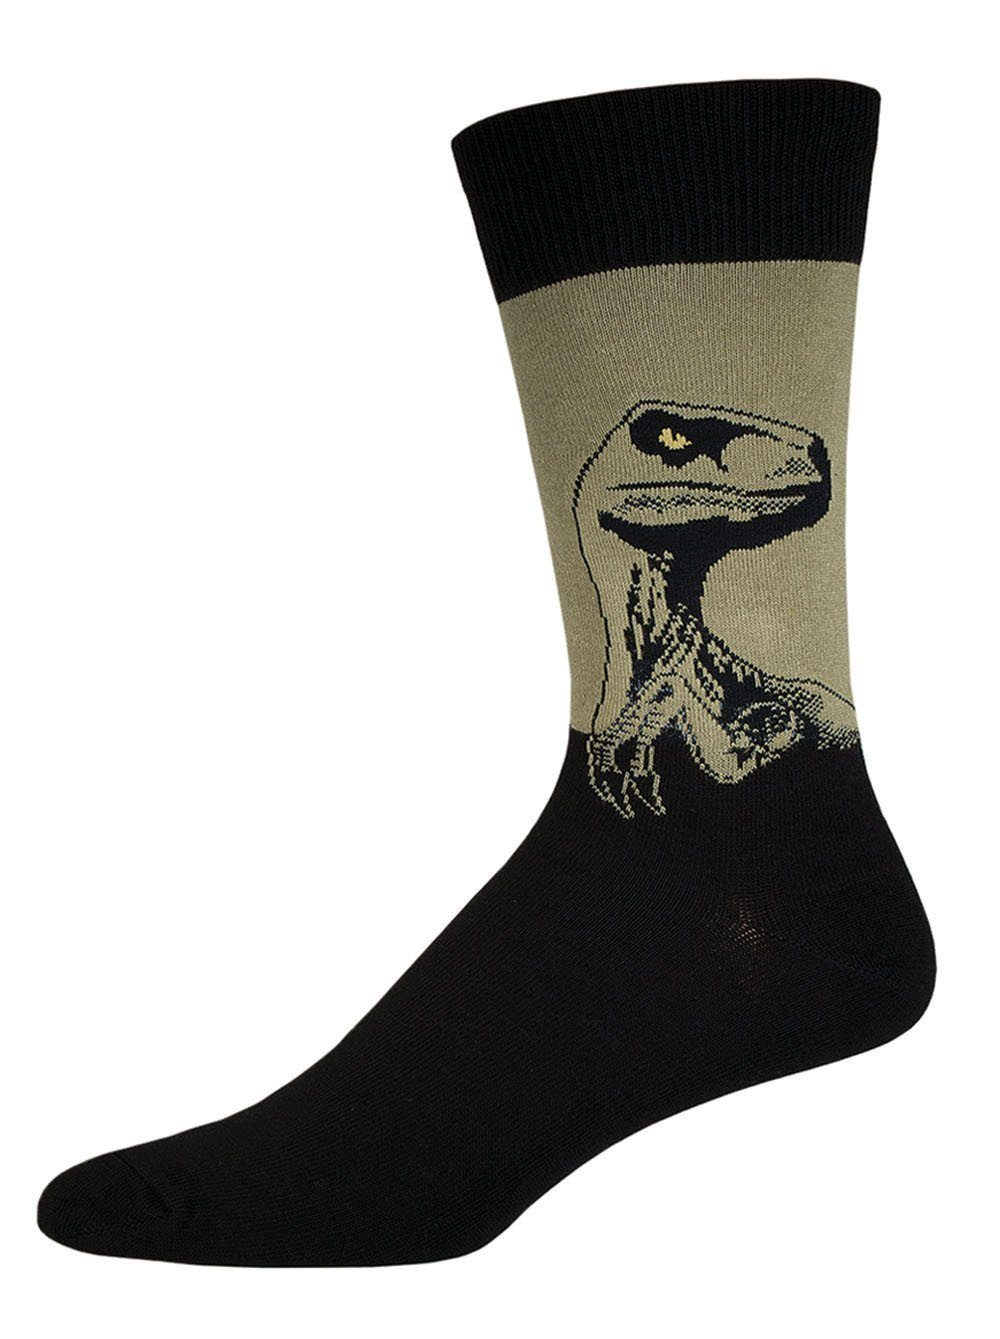 Socksmith - Raptor Crew Socks | Men's - Knock Your Socks Off